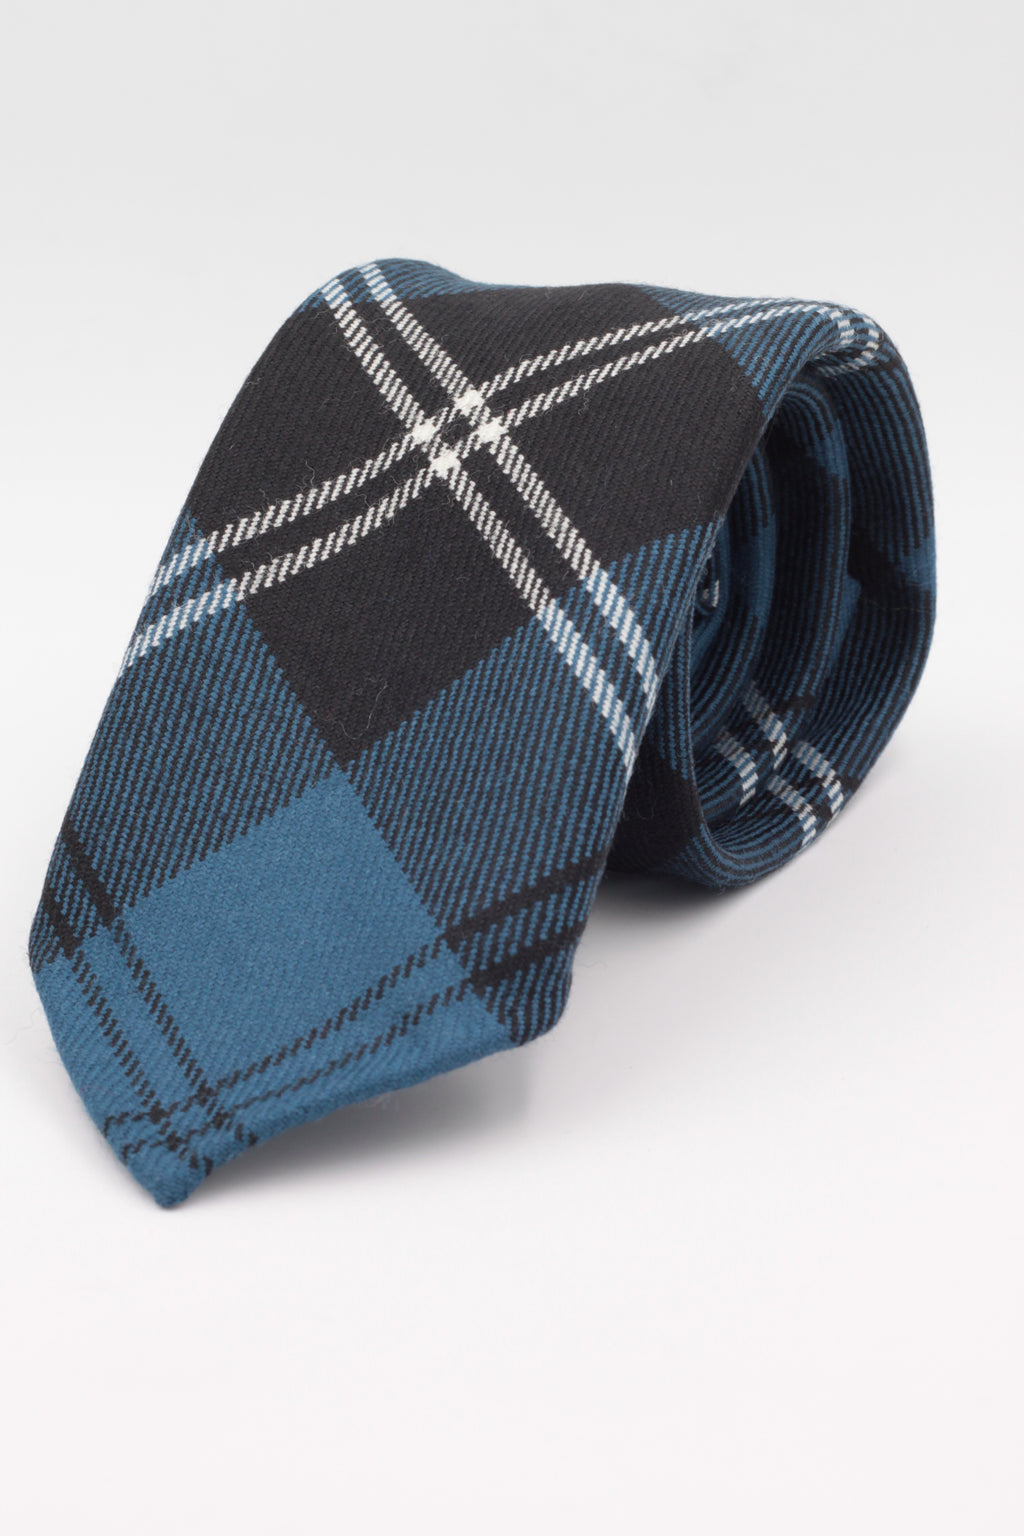 Royal Blue, Black and White tartan tie